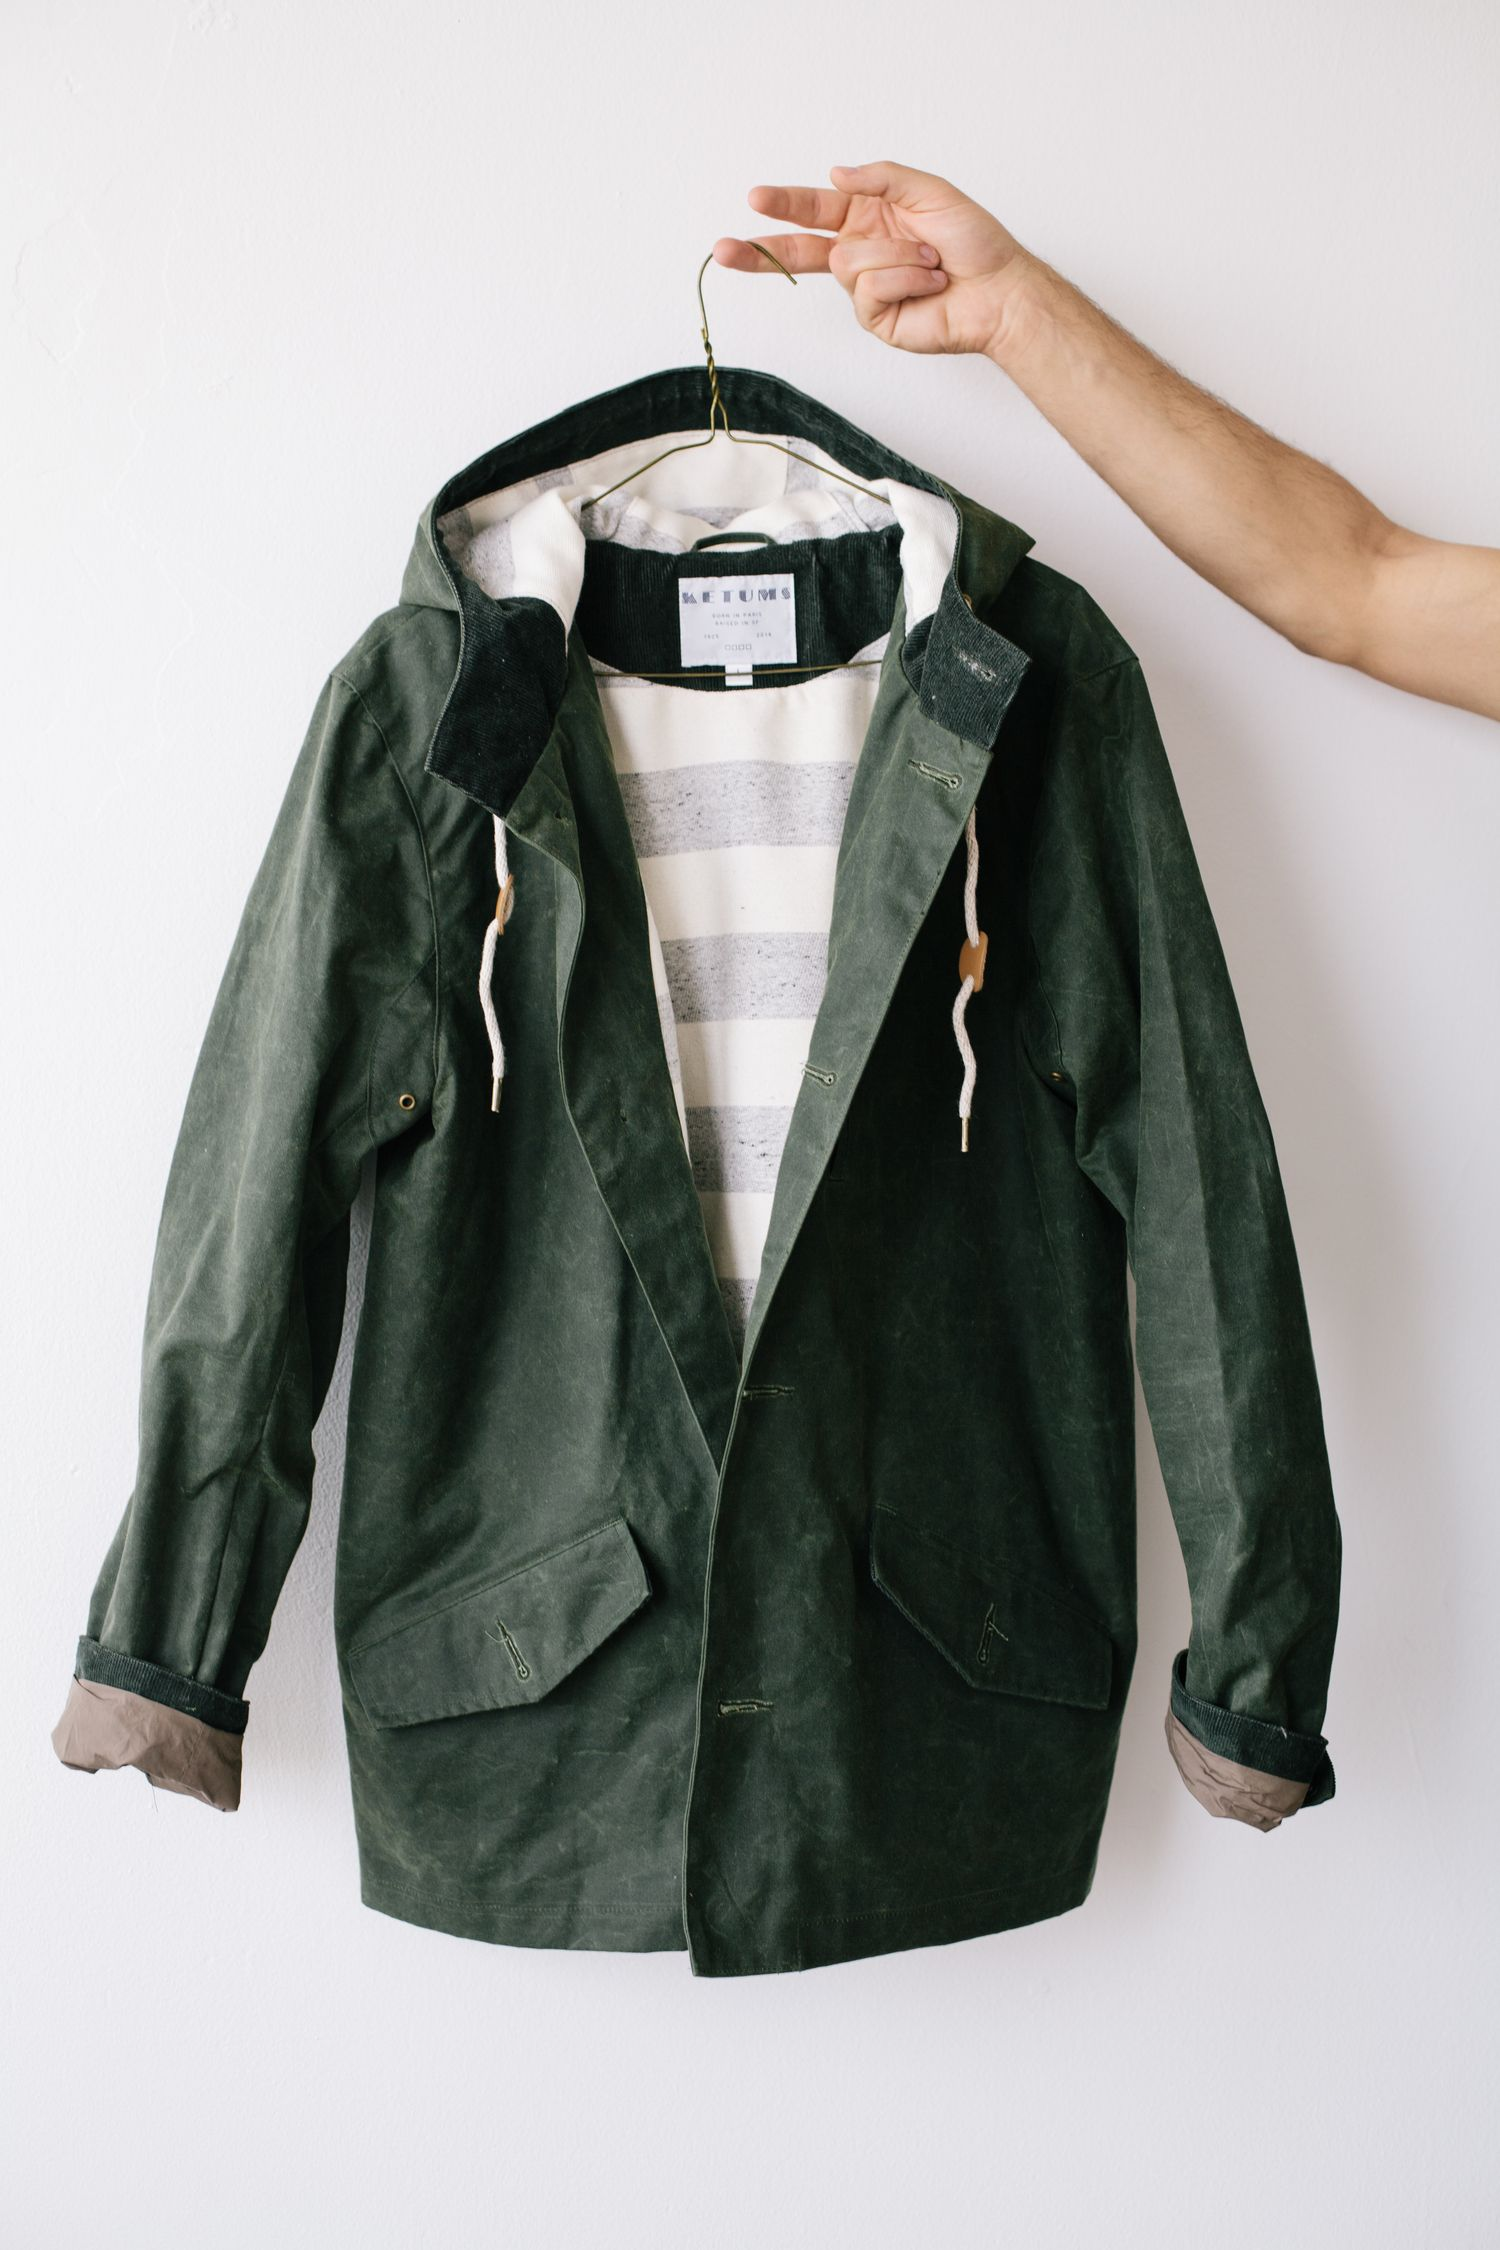 Waxed canvas jacket from Ketums. Looks like the kind of military jacket that would be easy to layer under and would hold up to Pacific Northwest weather.